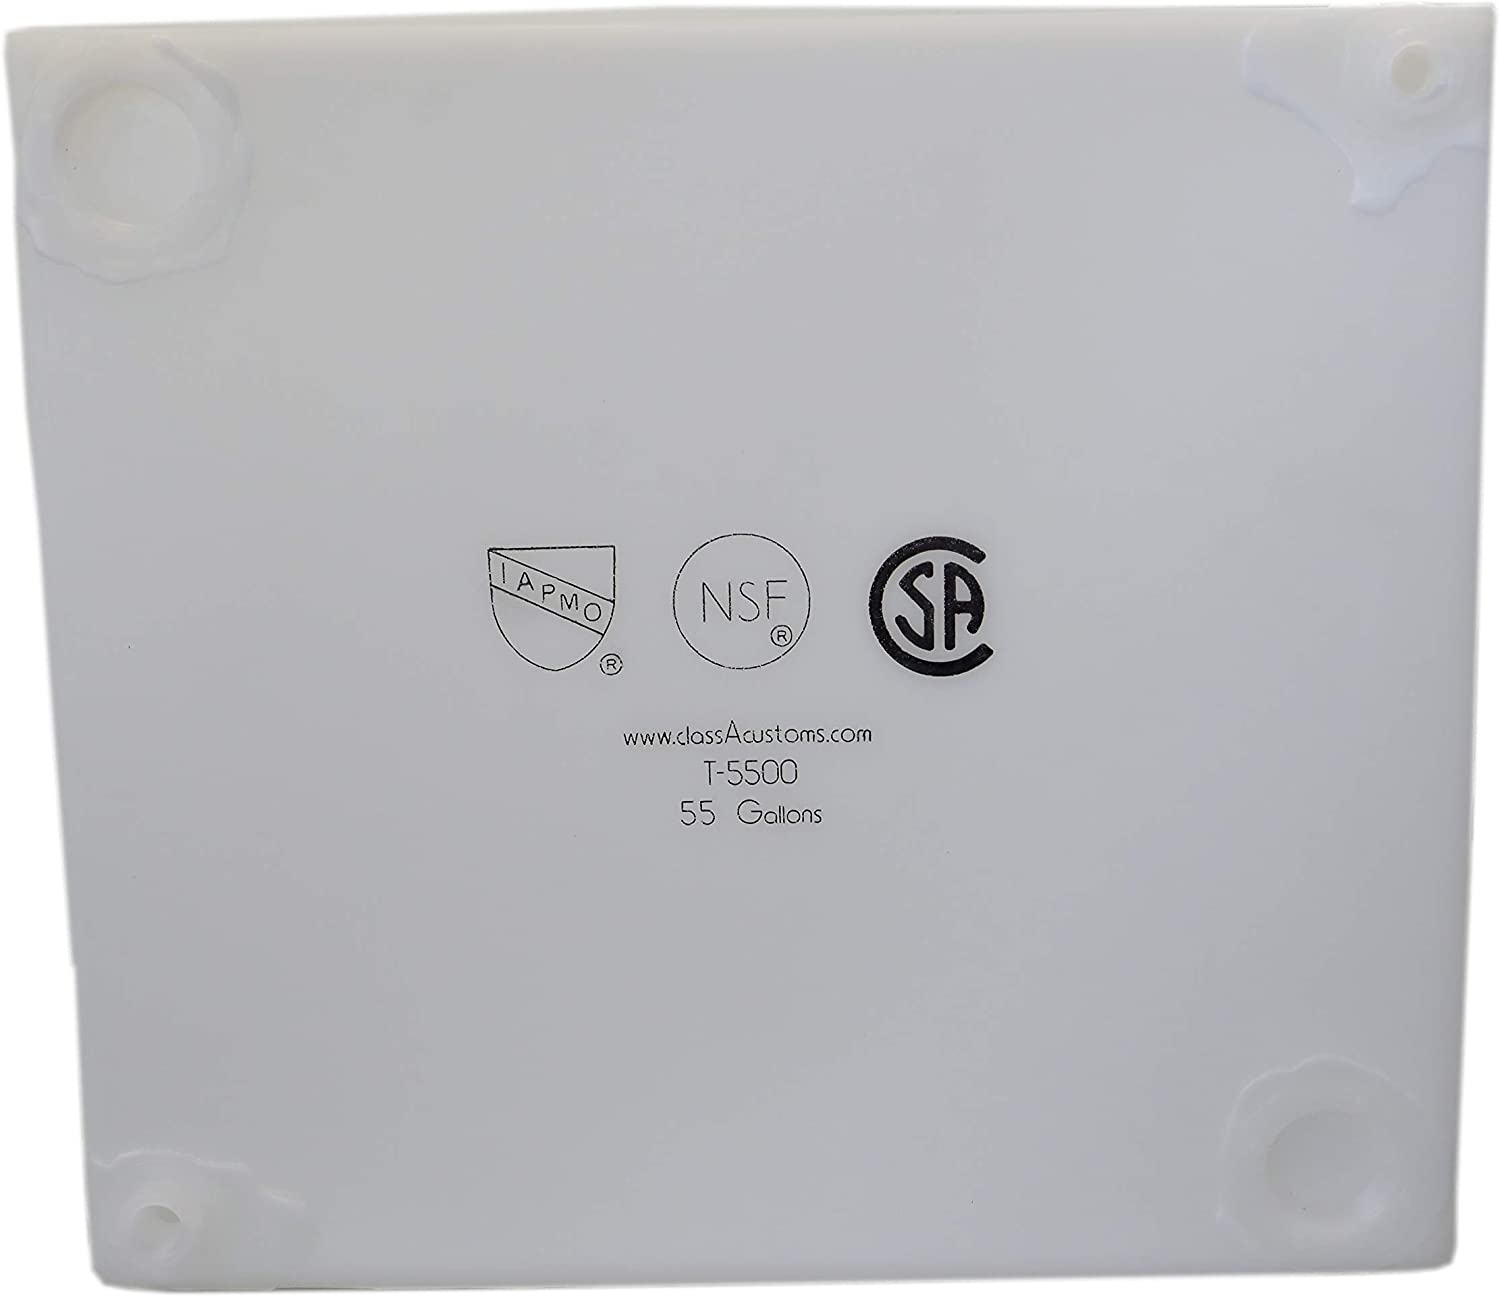 55 Gallon /& 75 Gallon Class A Customs RV Fresh and Gray Water Tank Combo Pack | NSF//CSA//FDA Certified RV Water Holding Tanks